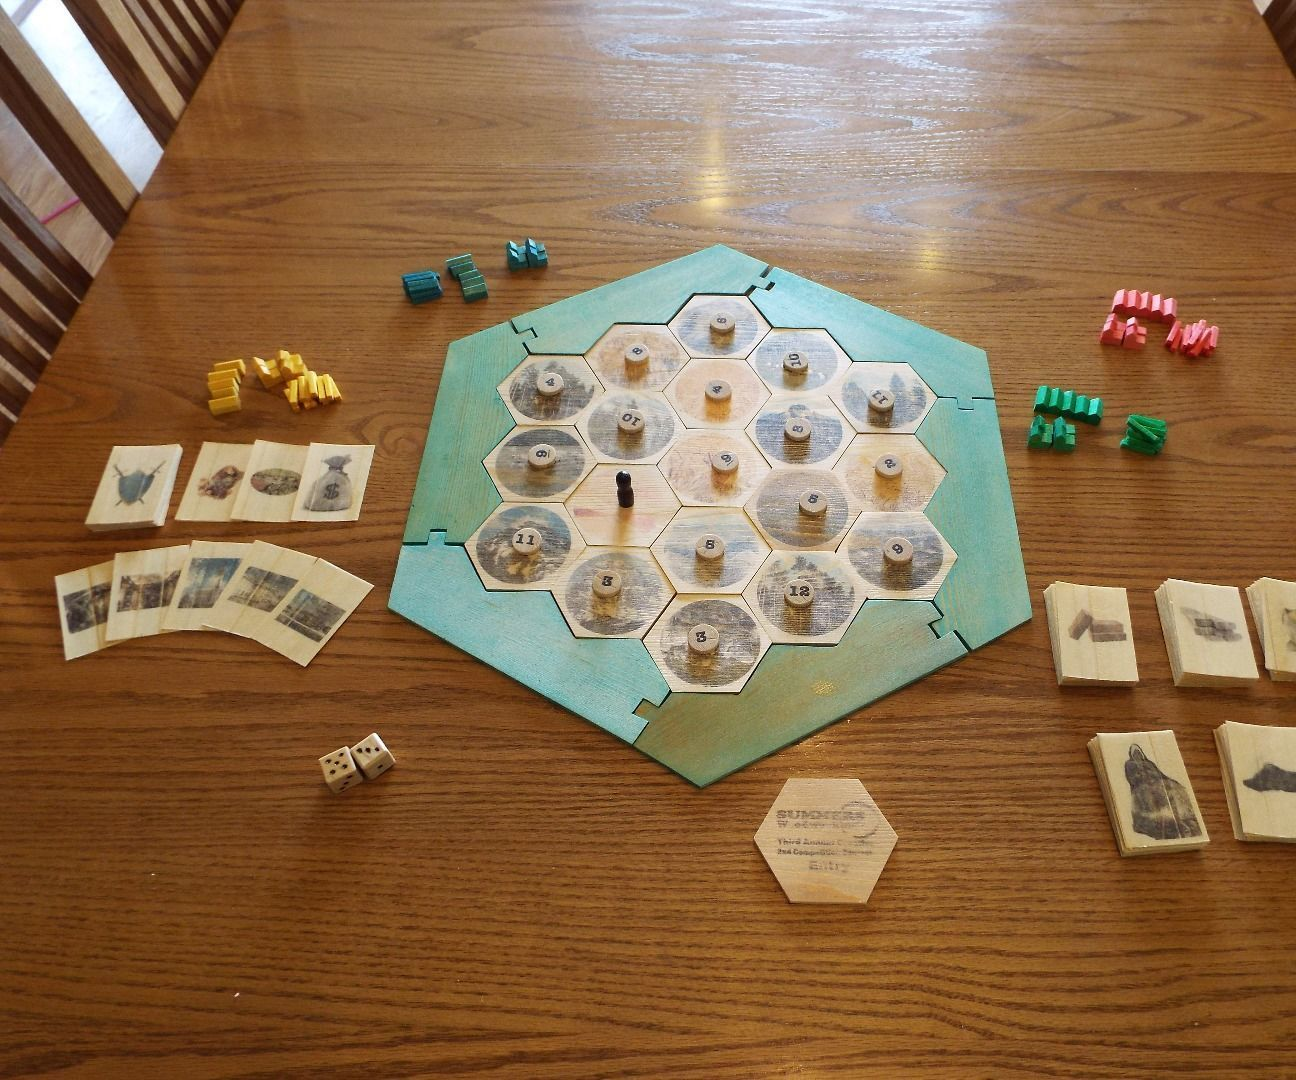 2x4 Settlers of Catan Settlers of catan, Crafts, Board games